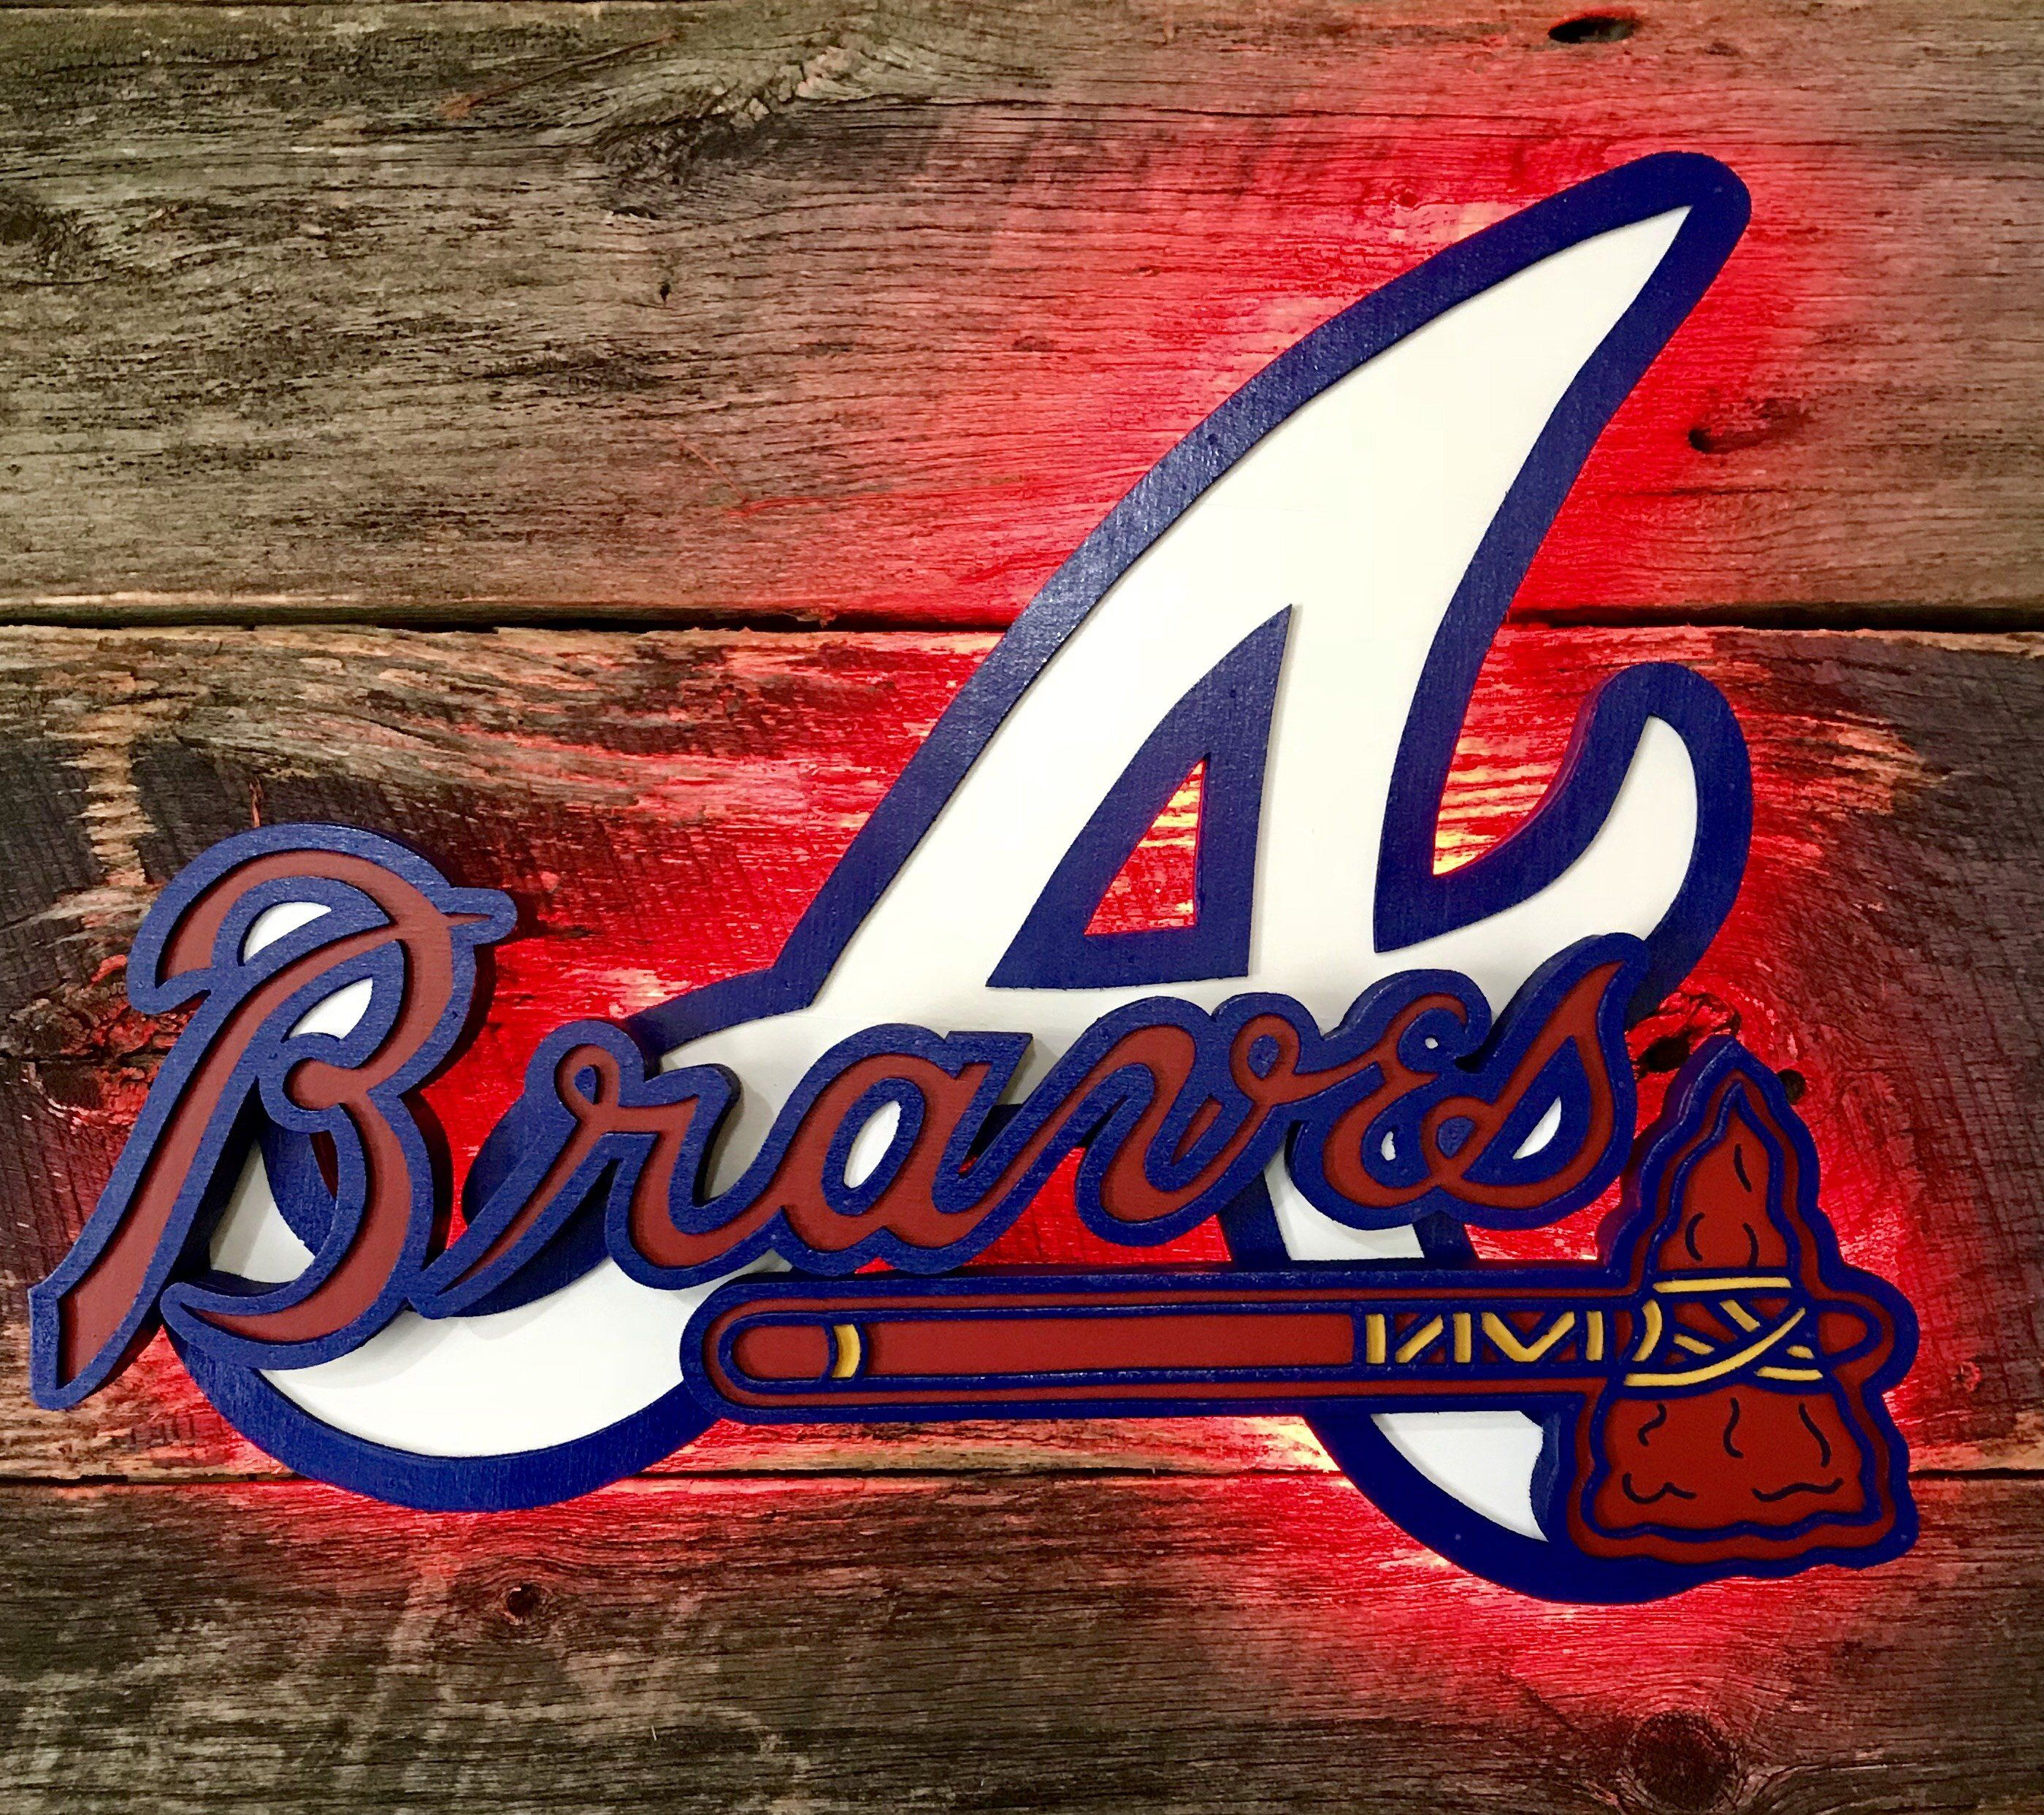 Atlanta Braves Wooden Wall Decor With Images Wooden Wall Decor Wooden Walls Atlanta Braves